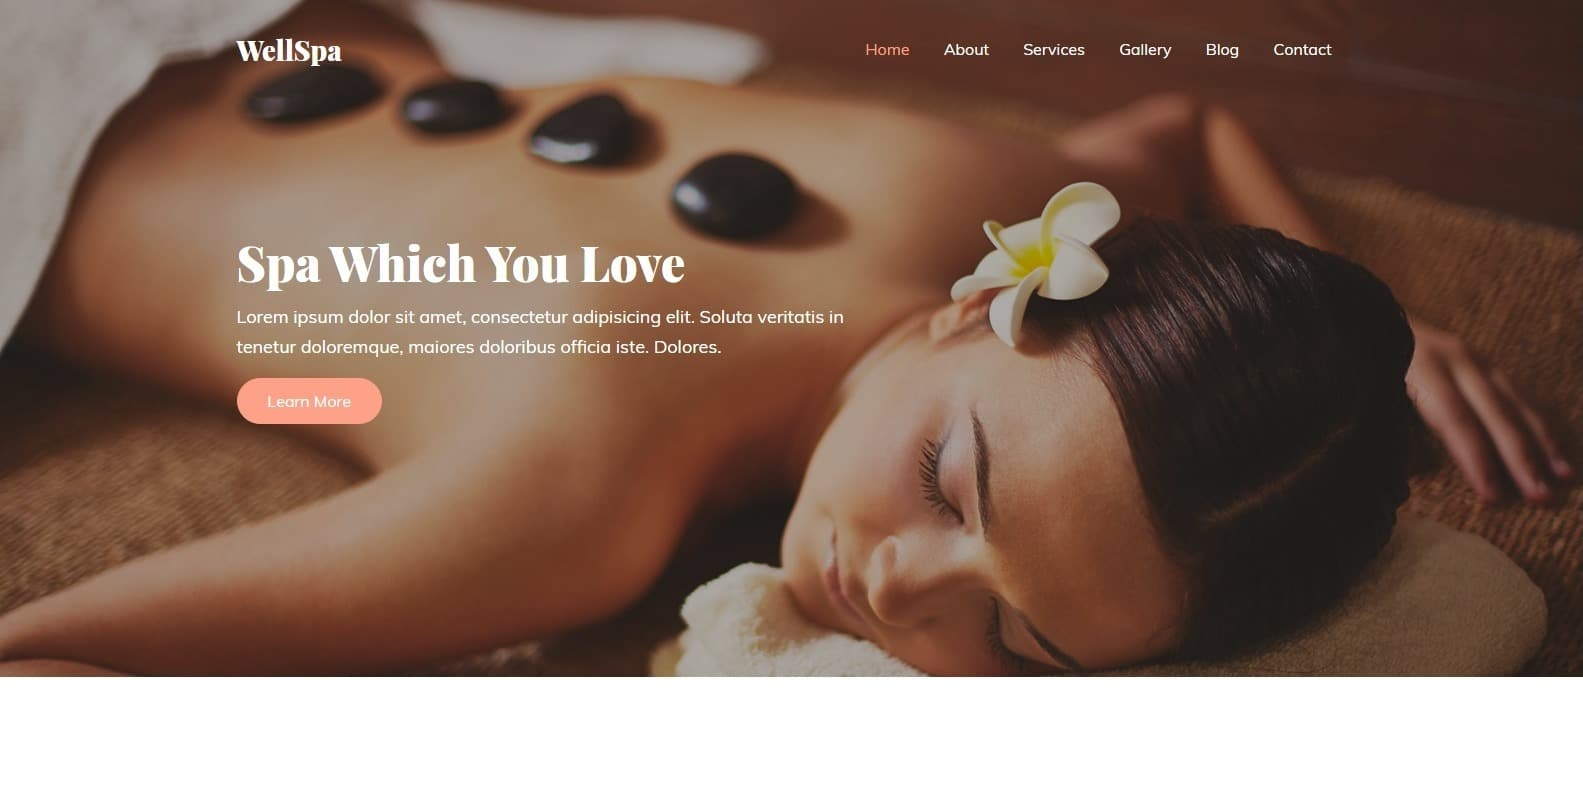 wellspa-spa-website-template